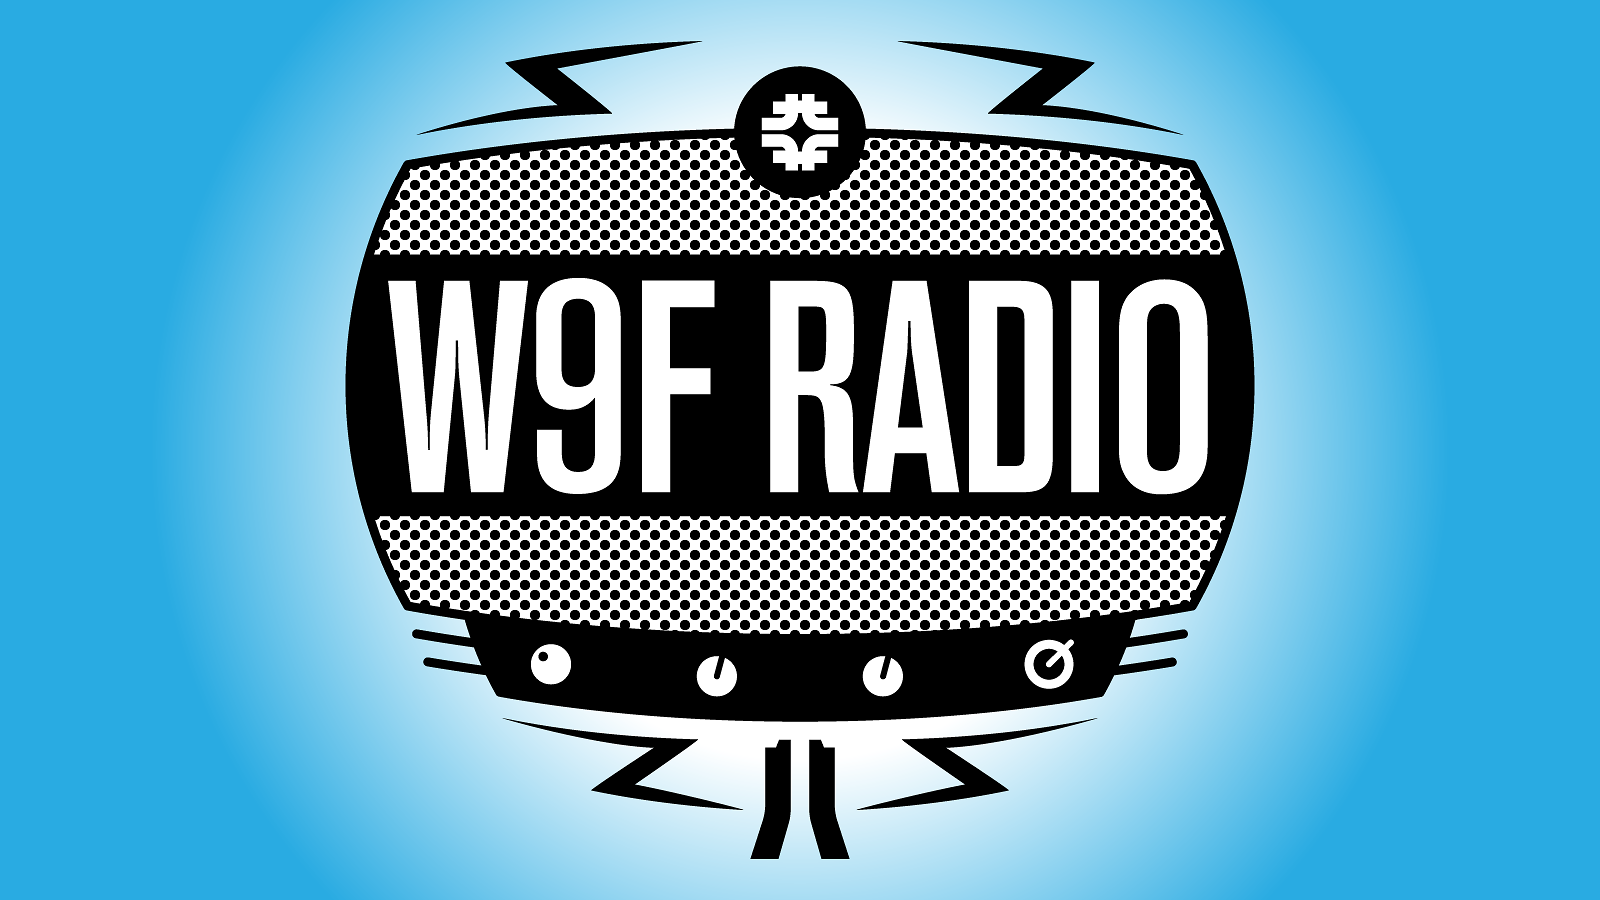 Illustration of black and white W9F RADIO graphic on blue background